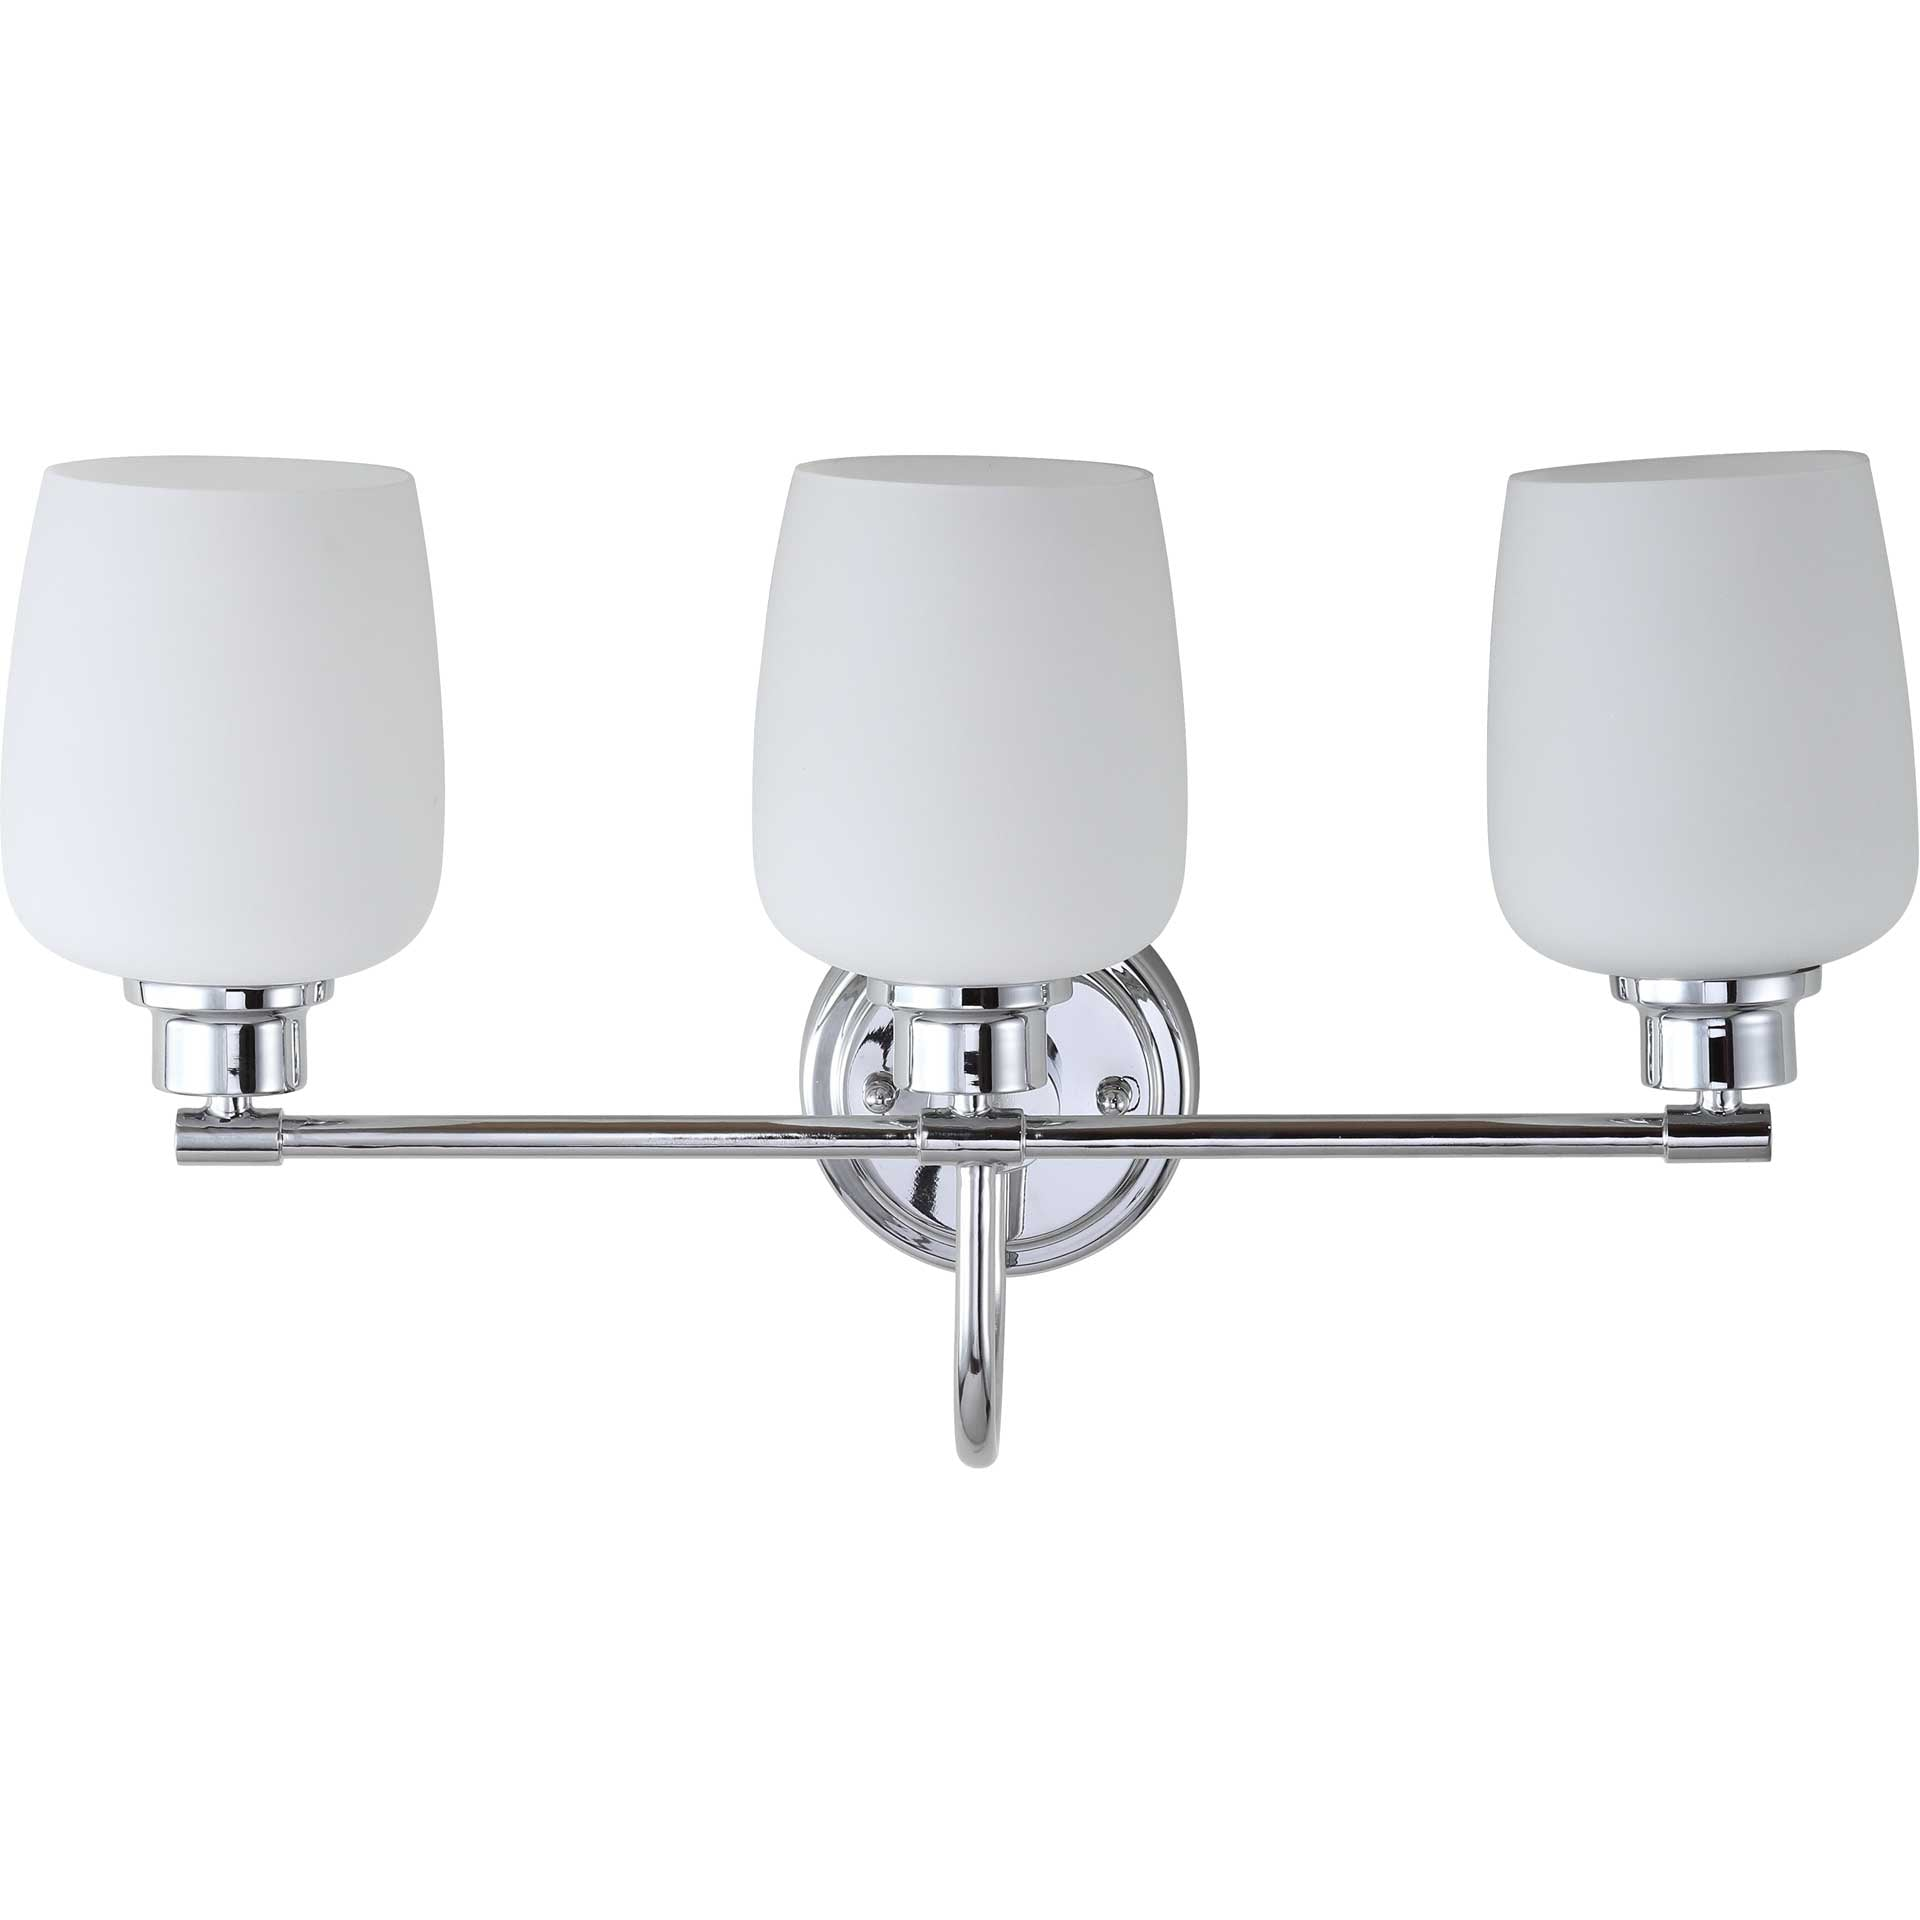 Leslie Three Light Bathroom Sconce Chrome